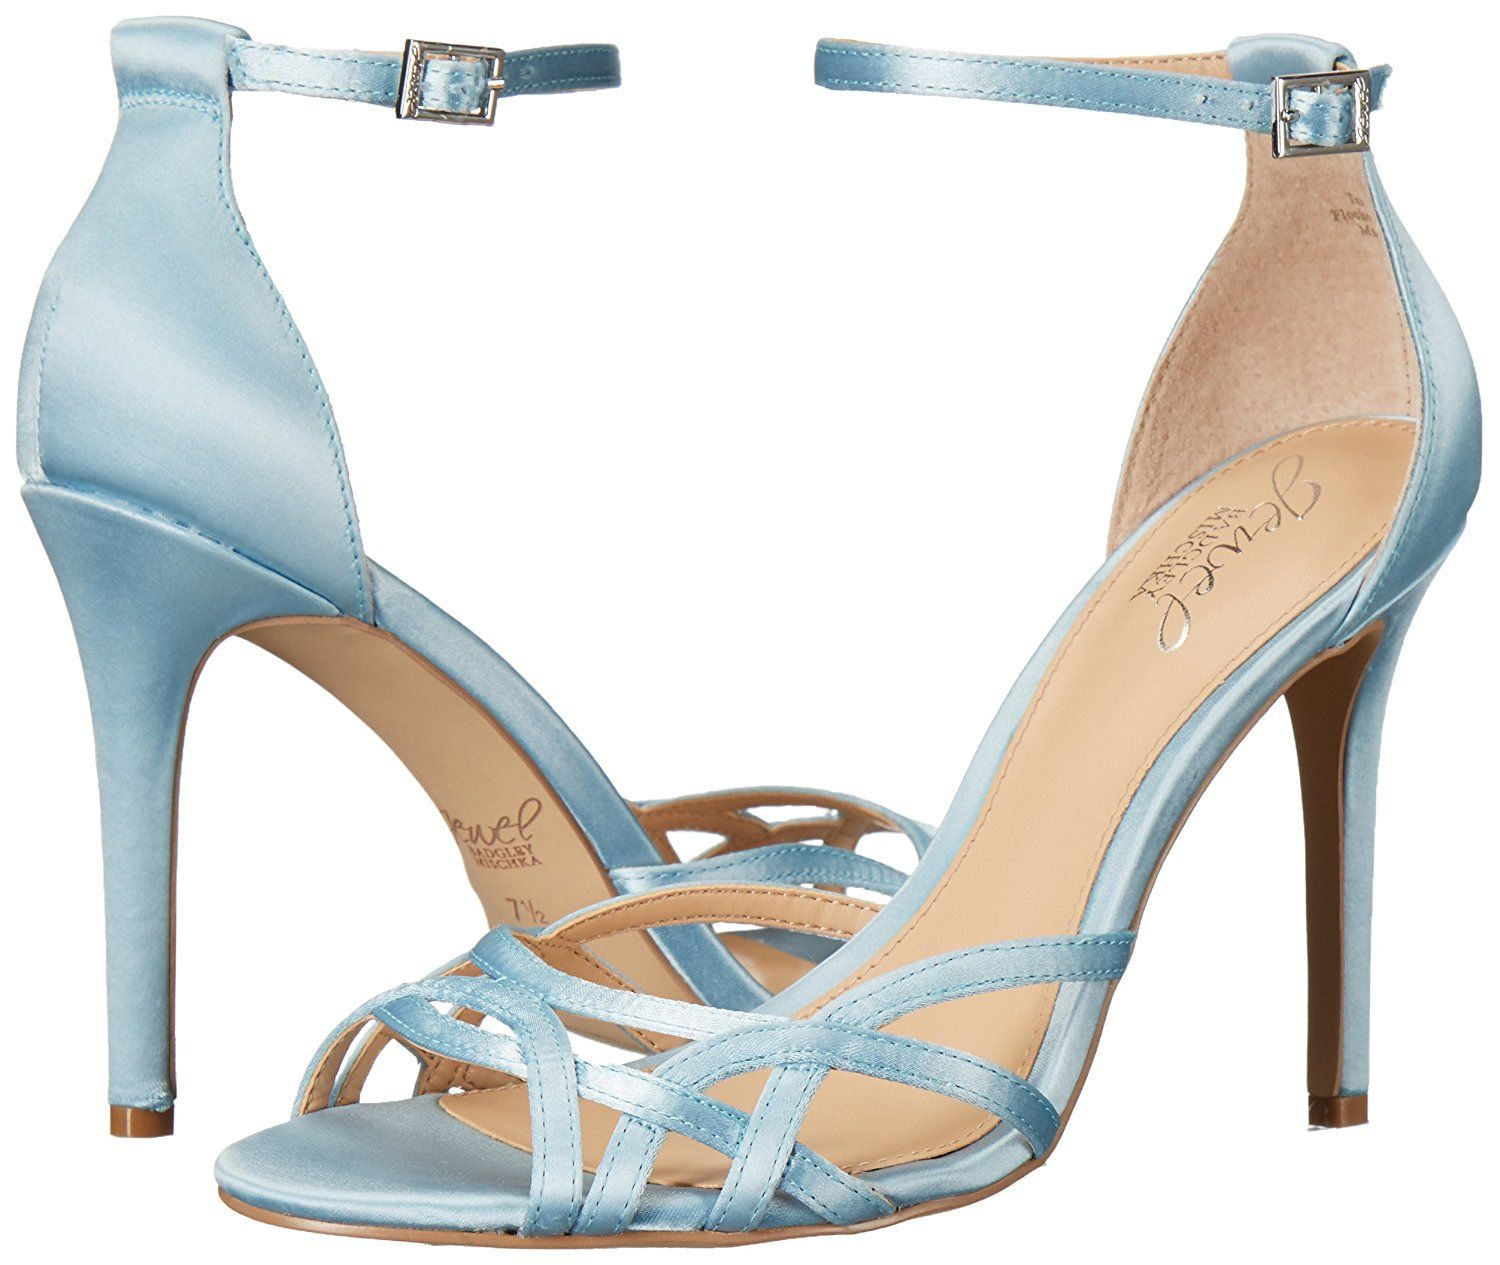 07d0820401181 Amazon.com: Jewel Badgley Mischka Women's Haskell Dress Sandal, Sky ...